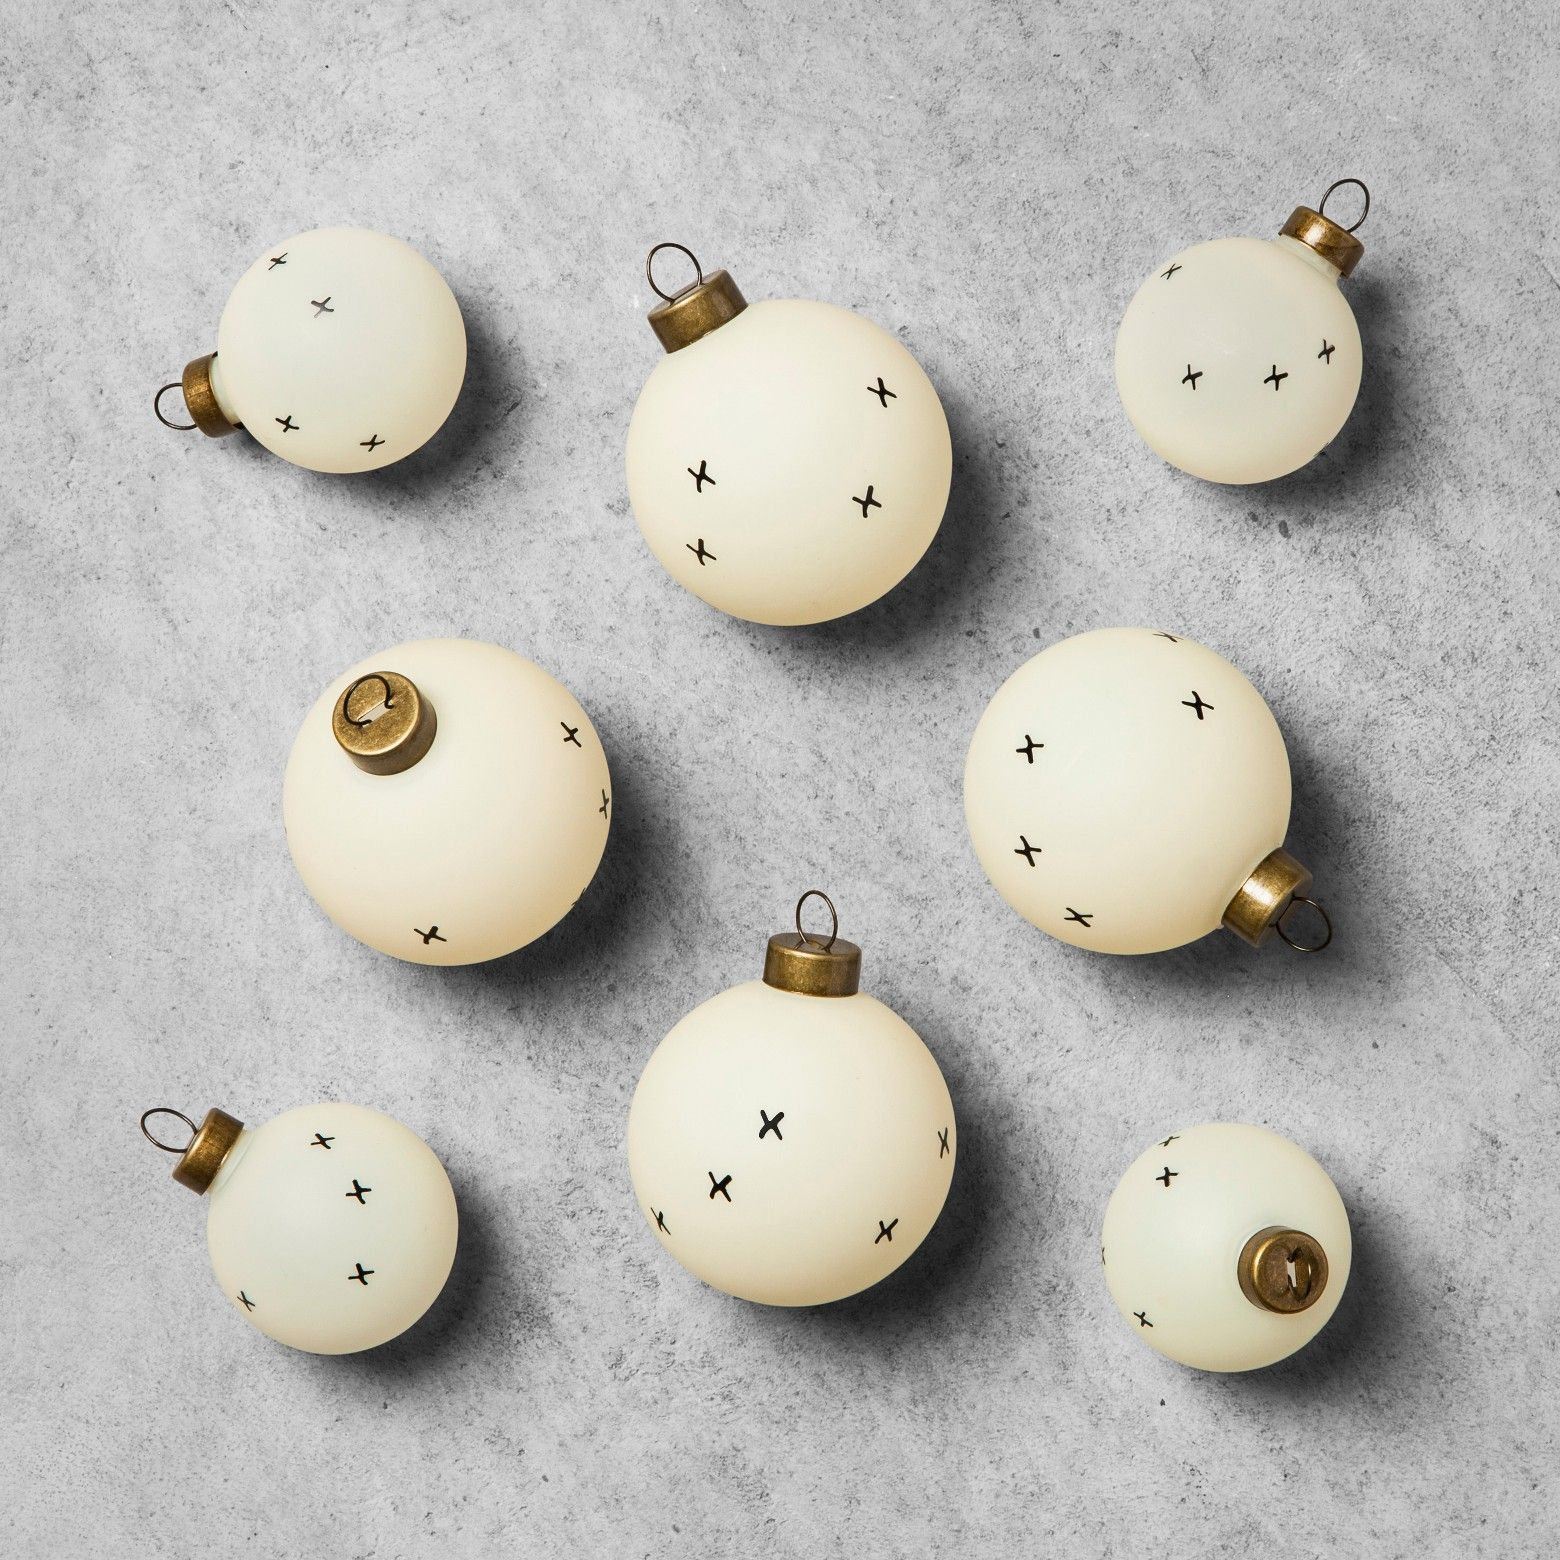 Patterned Ornament Set (8pc) - Cream - Hearth & Hand™ with Magnolia : Target